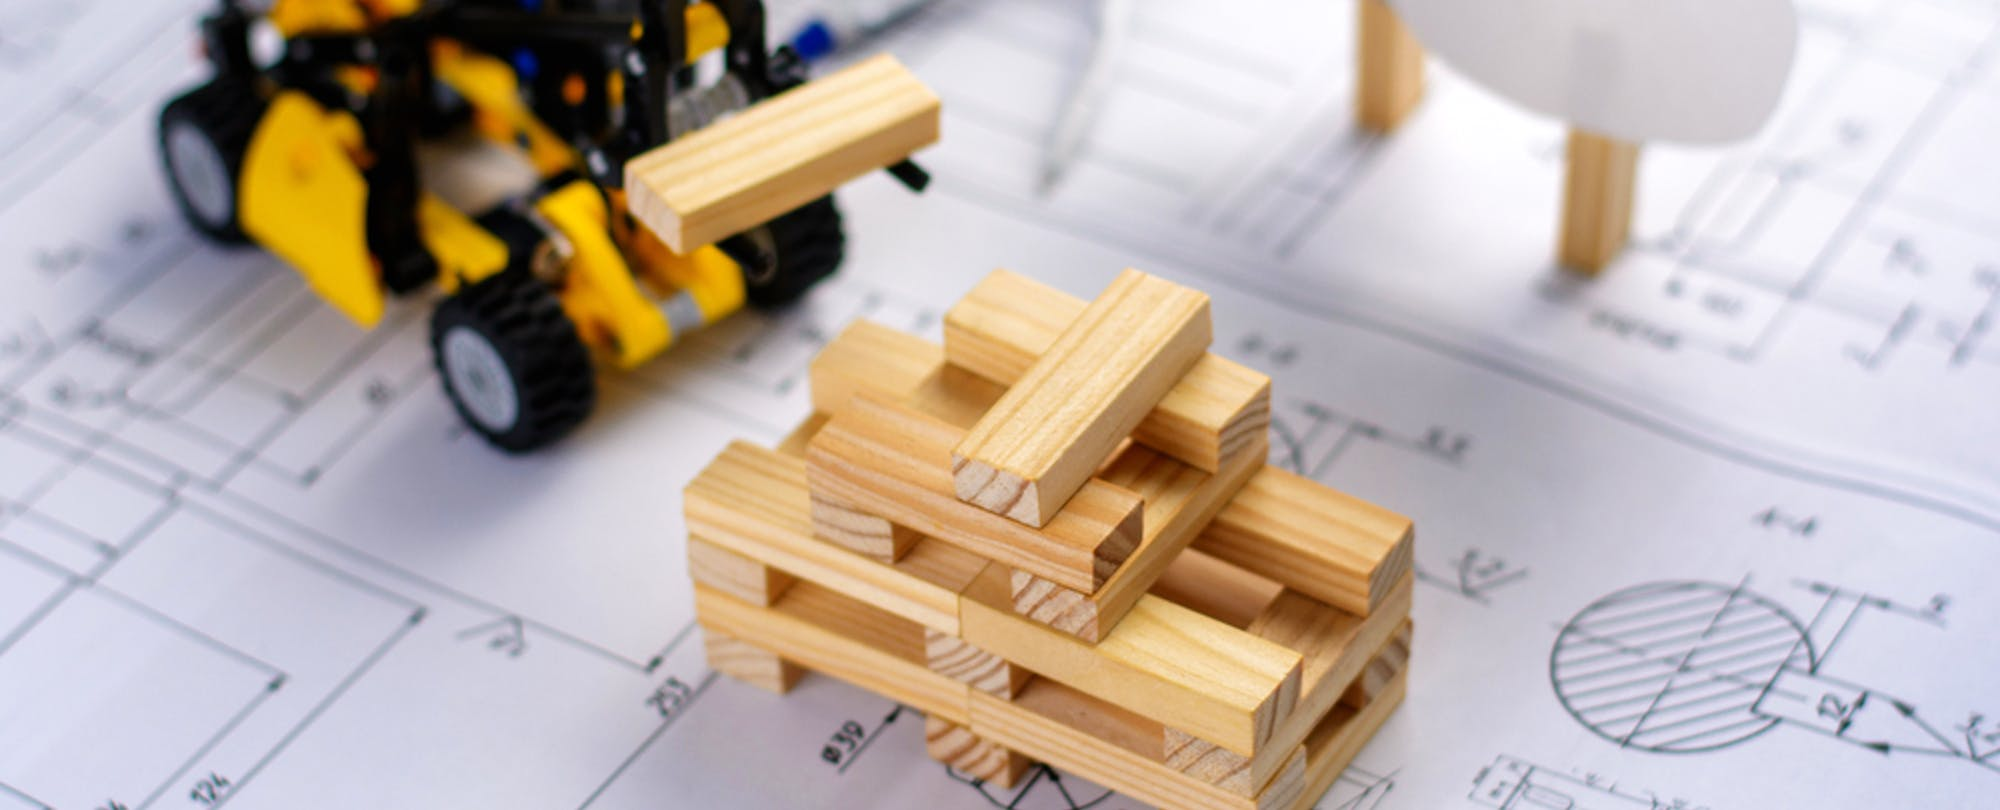 6 Must-Haves for Developing a Maker Mindset